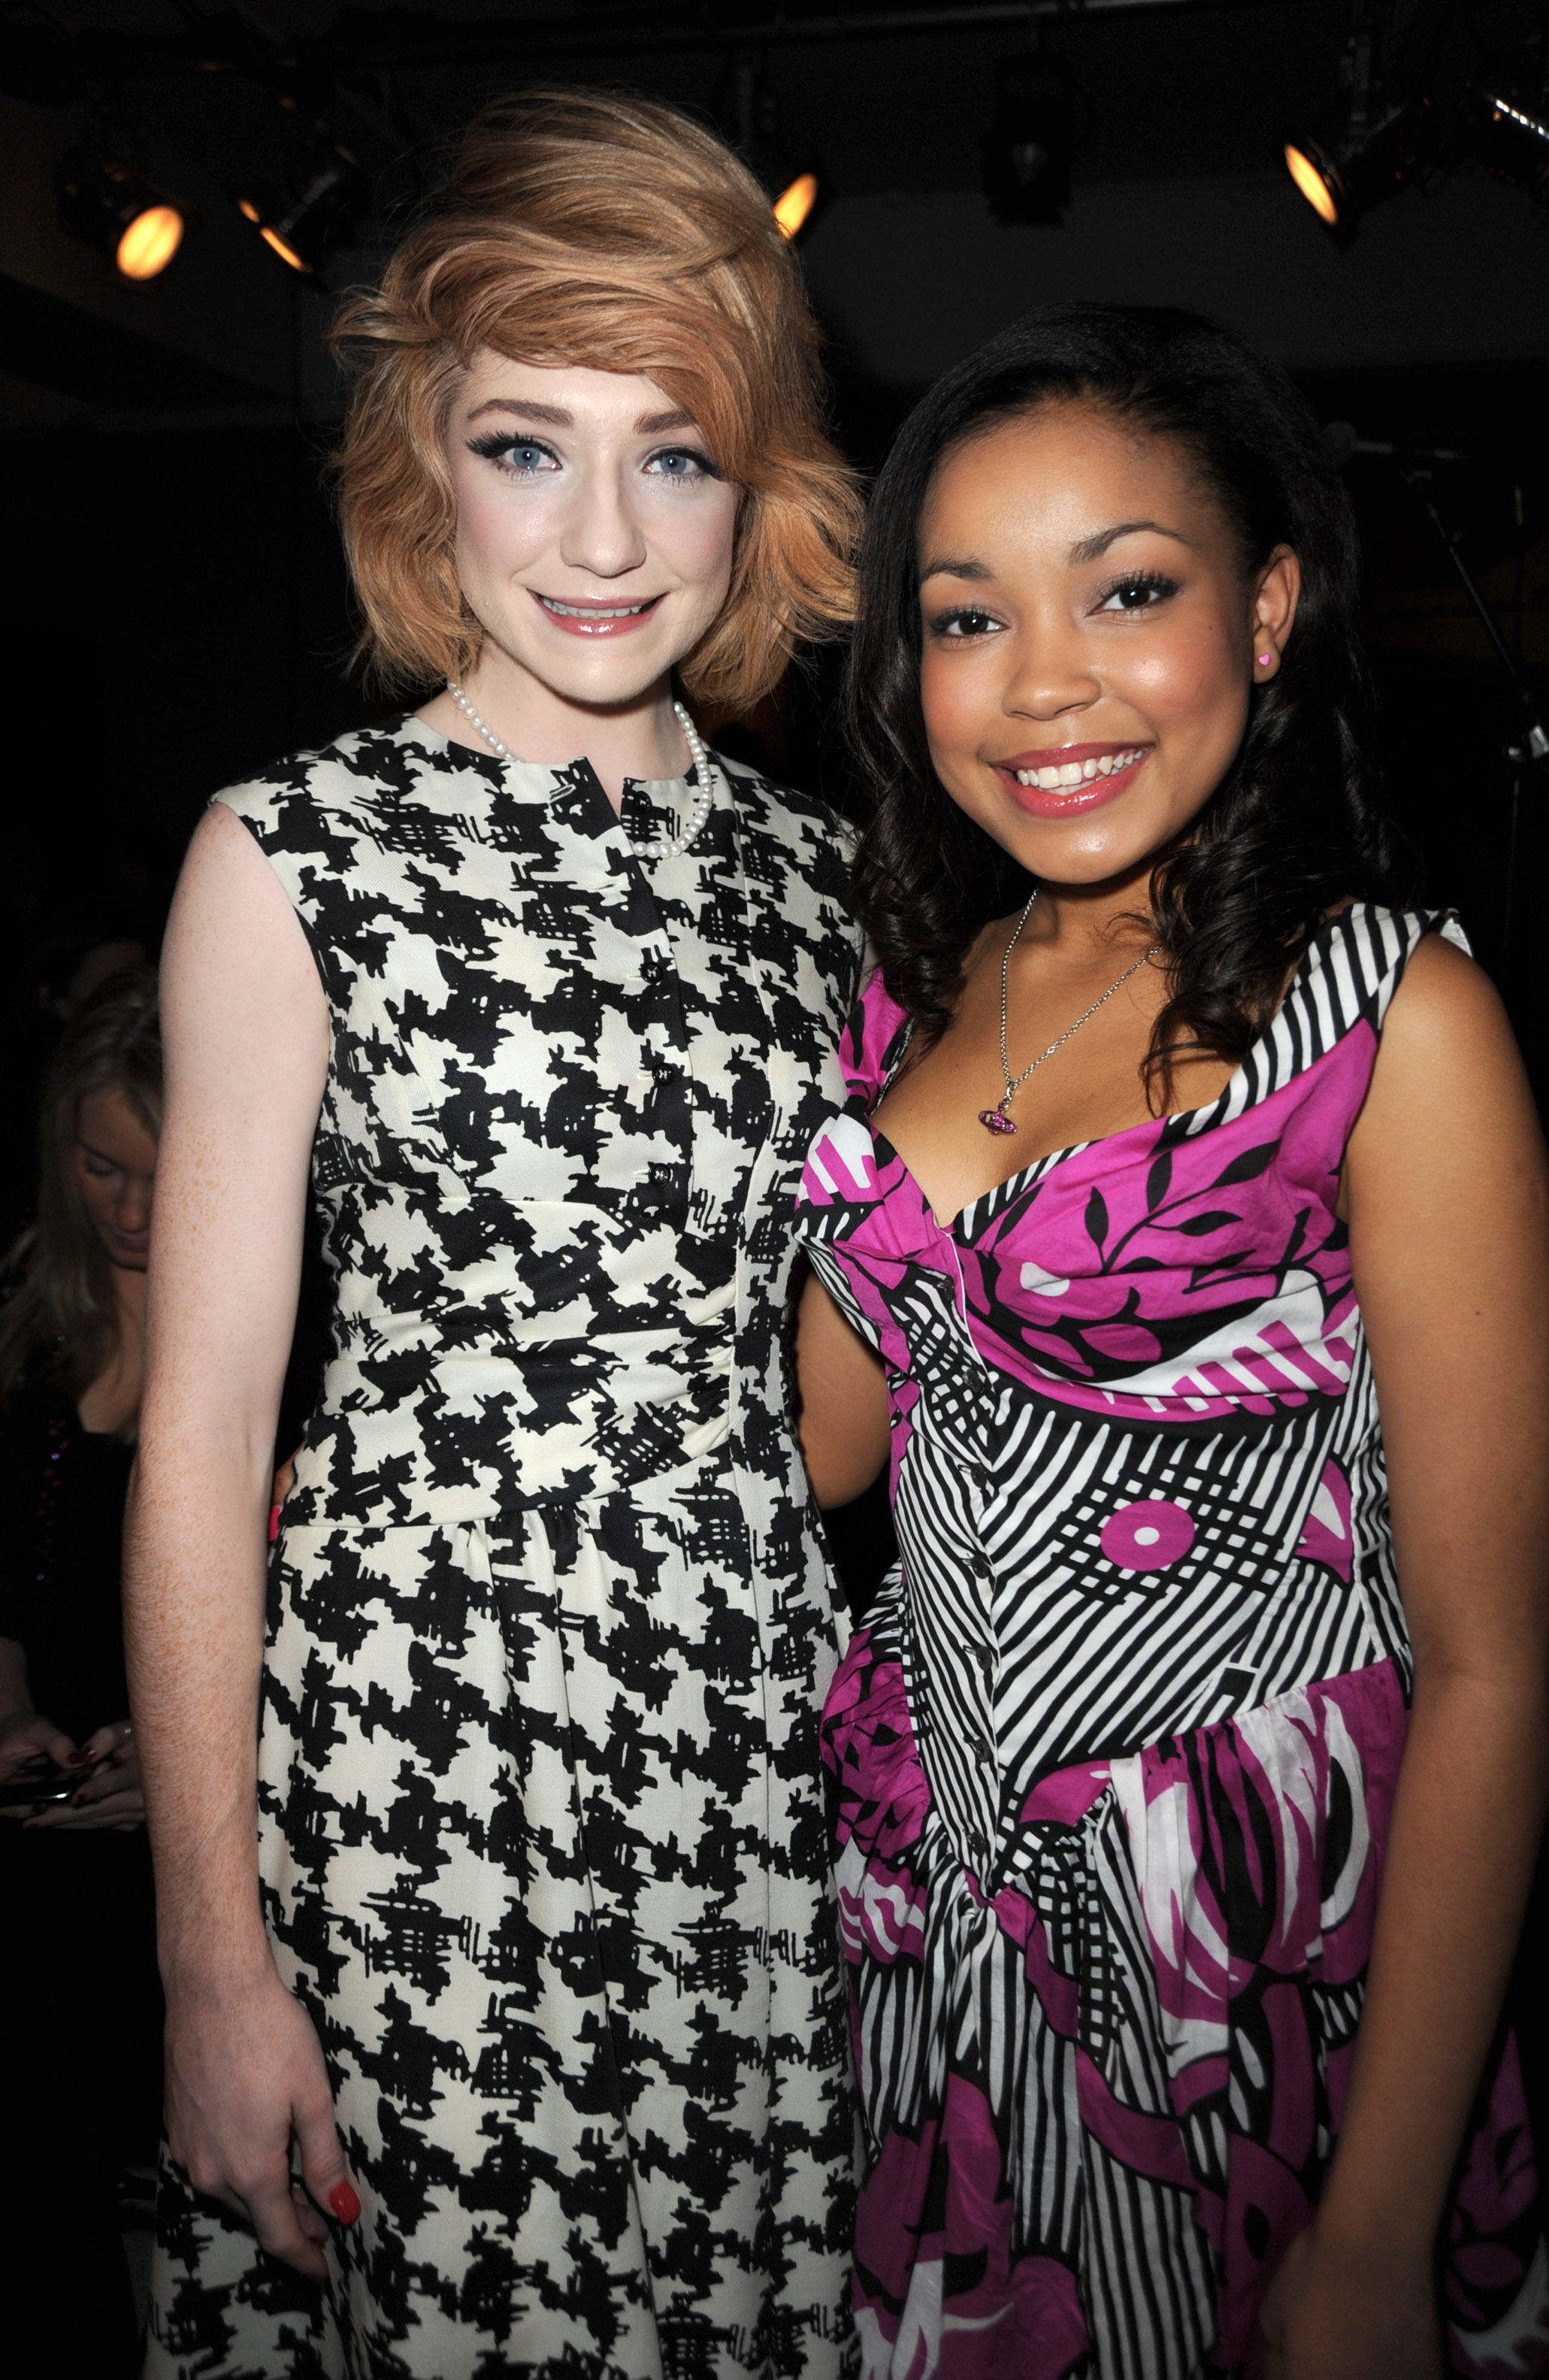 DIONNE BROMFIELD and NICOLA ROBERTS at Anglomania by Vivienne Westwood S/S  2010 Fashion show. Photography by RICHARD YOUNG